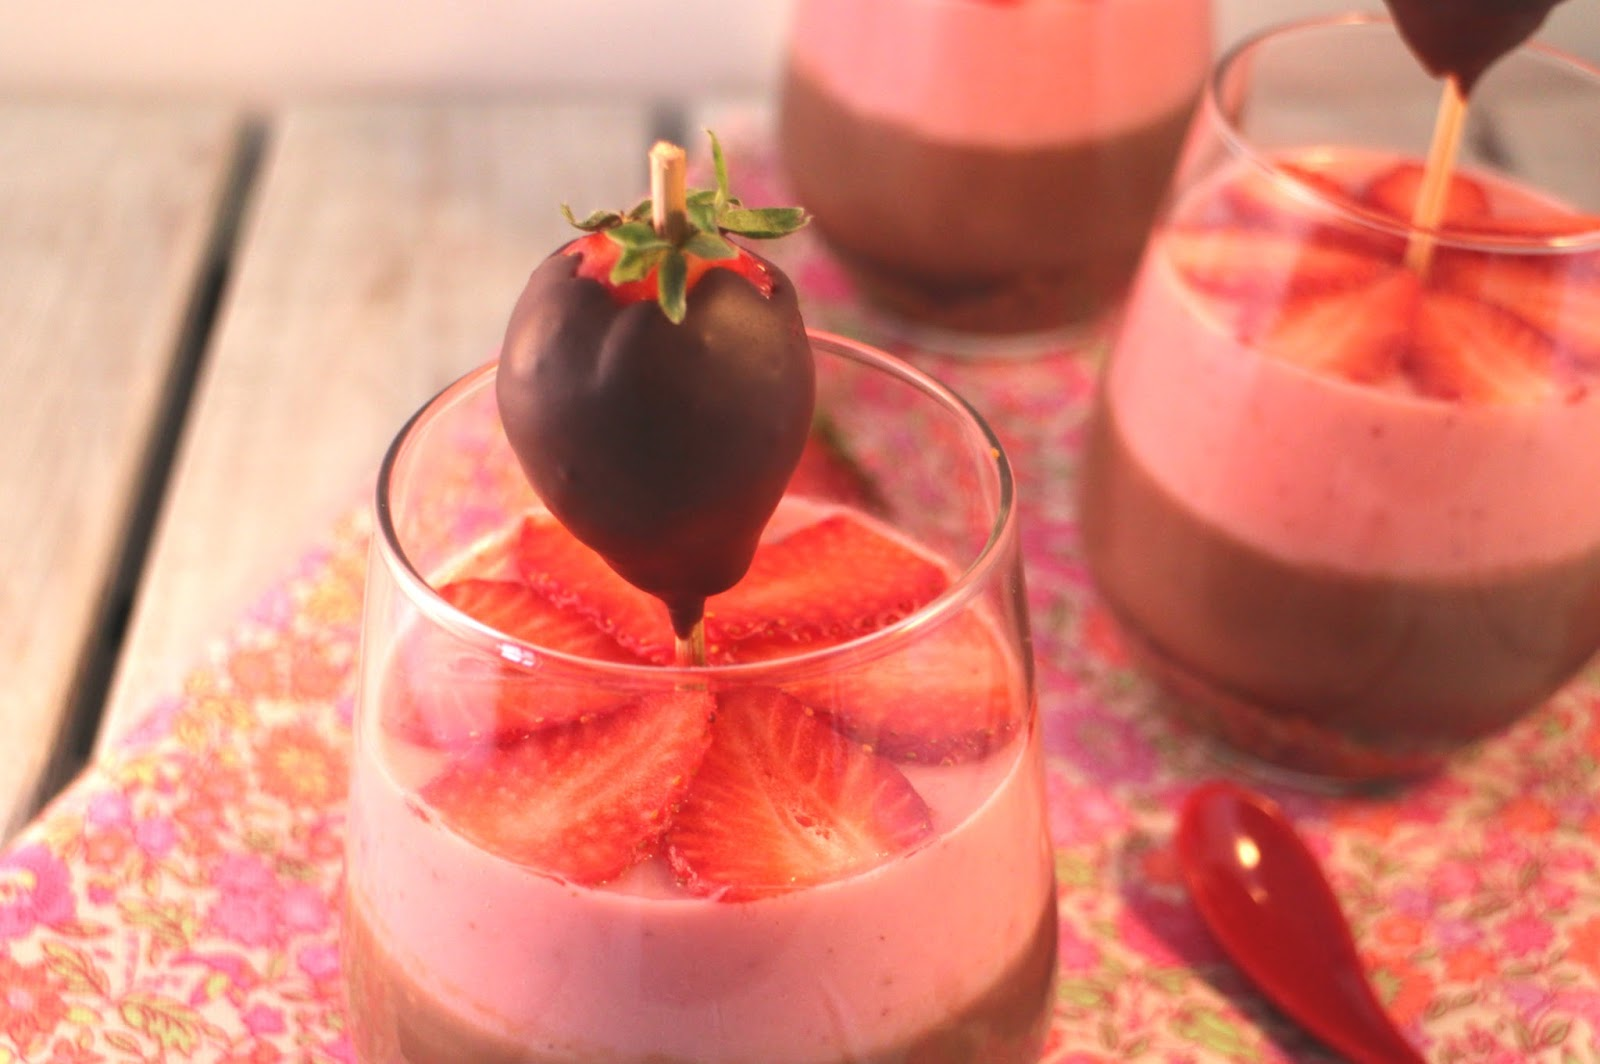 chocolate-strawberry-pudding, pudin-de-fresas-y-chocolate